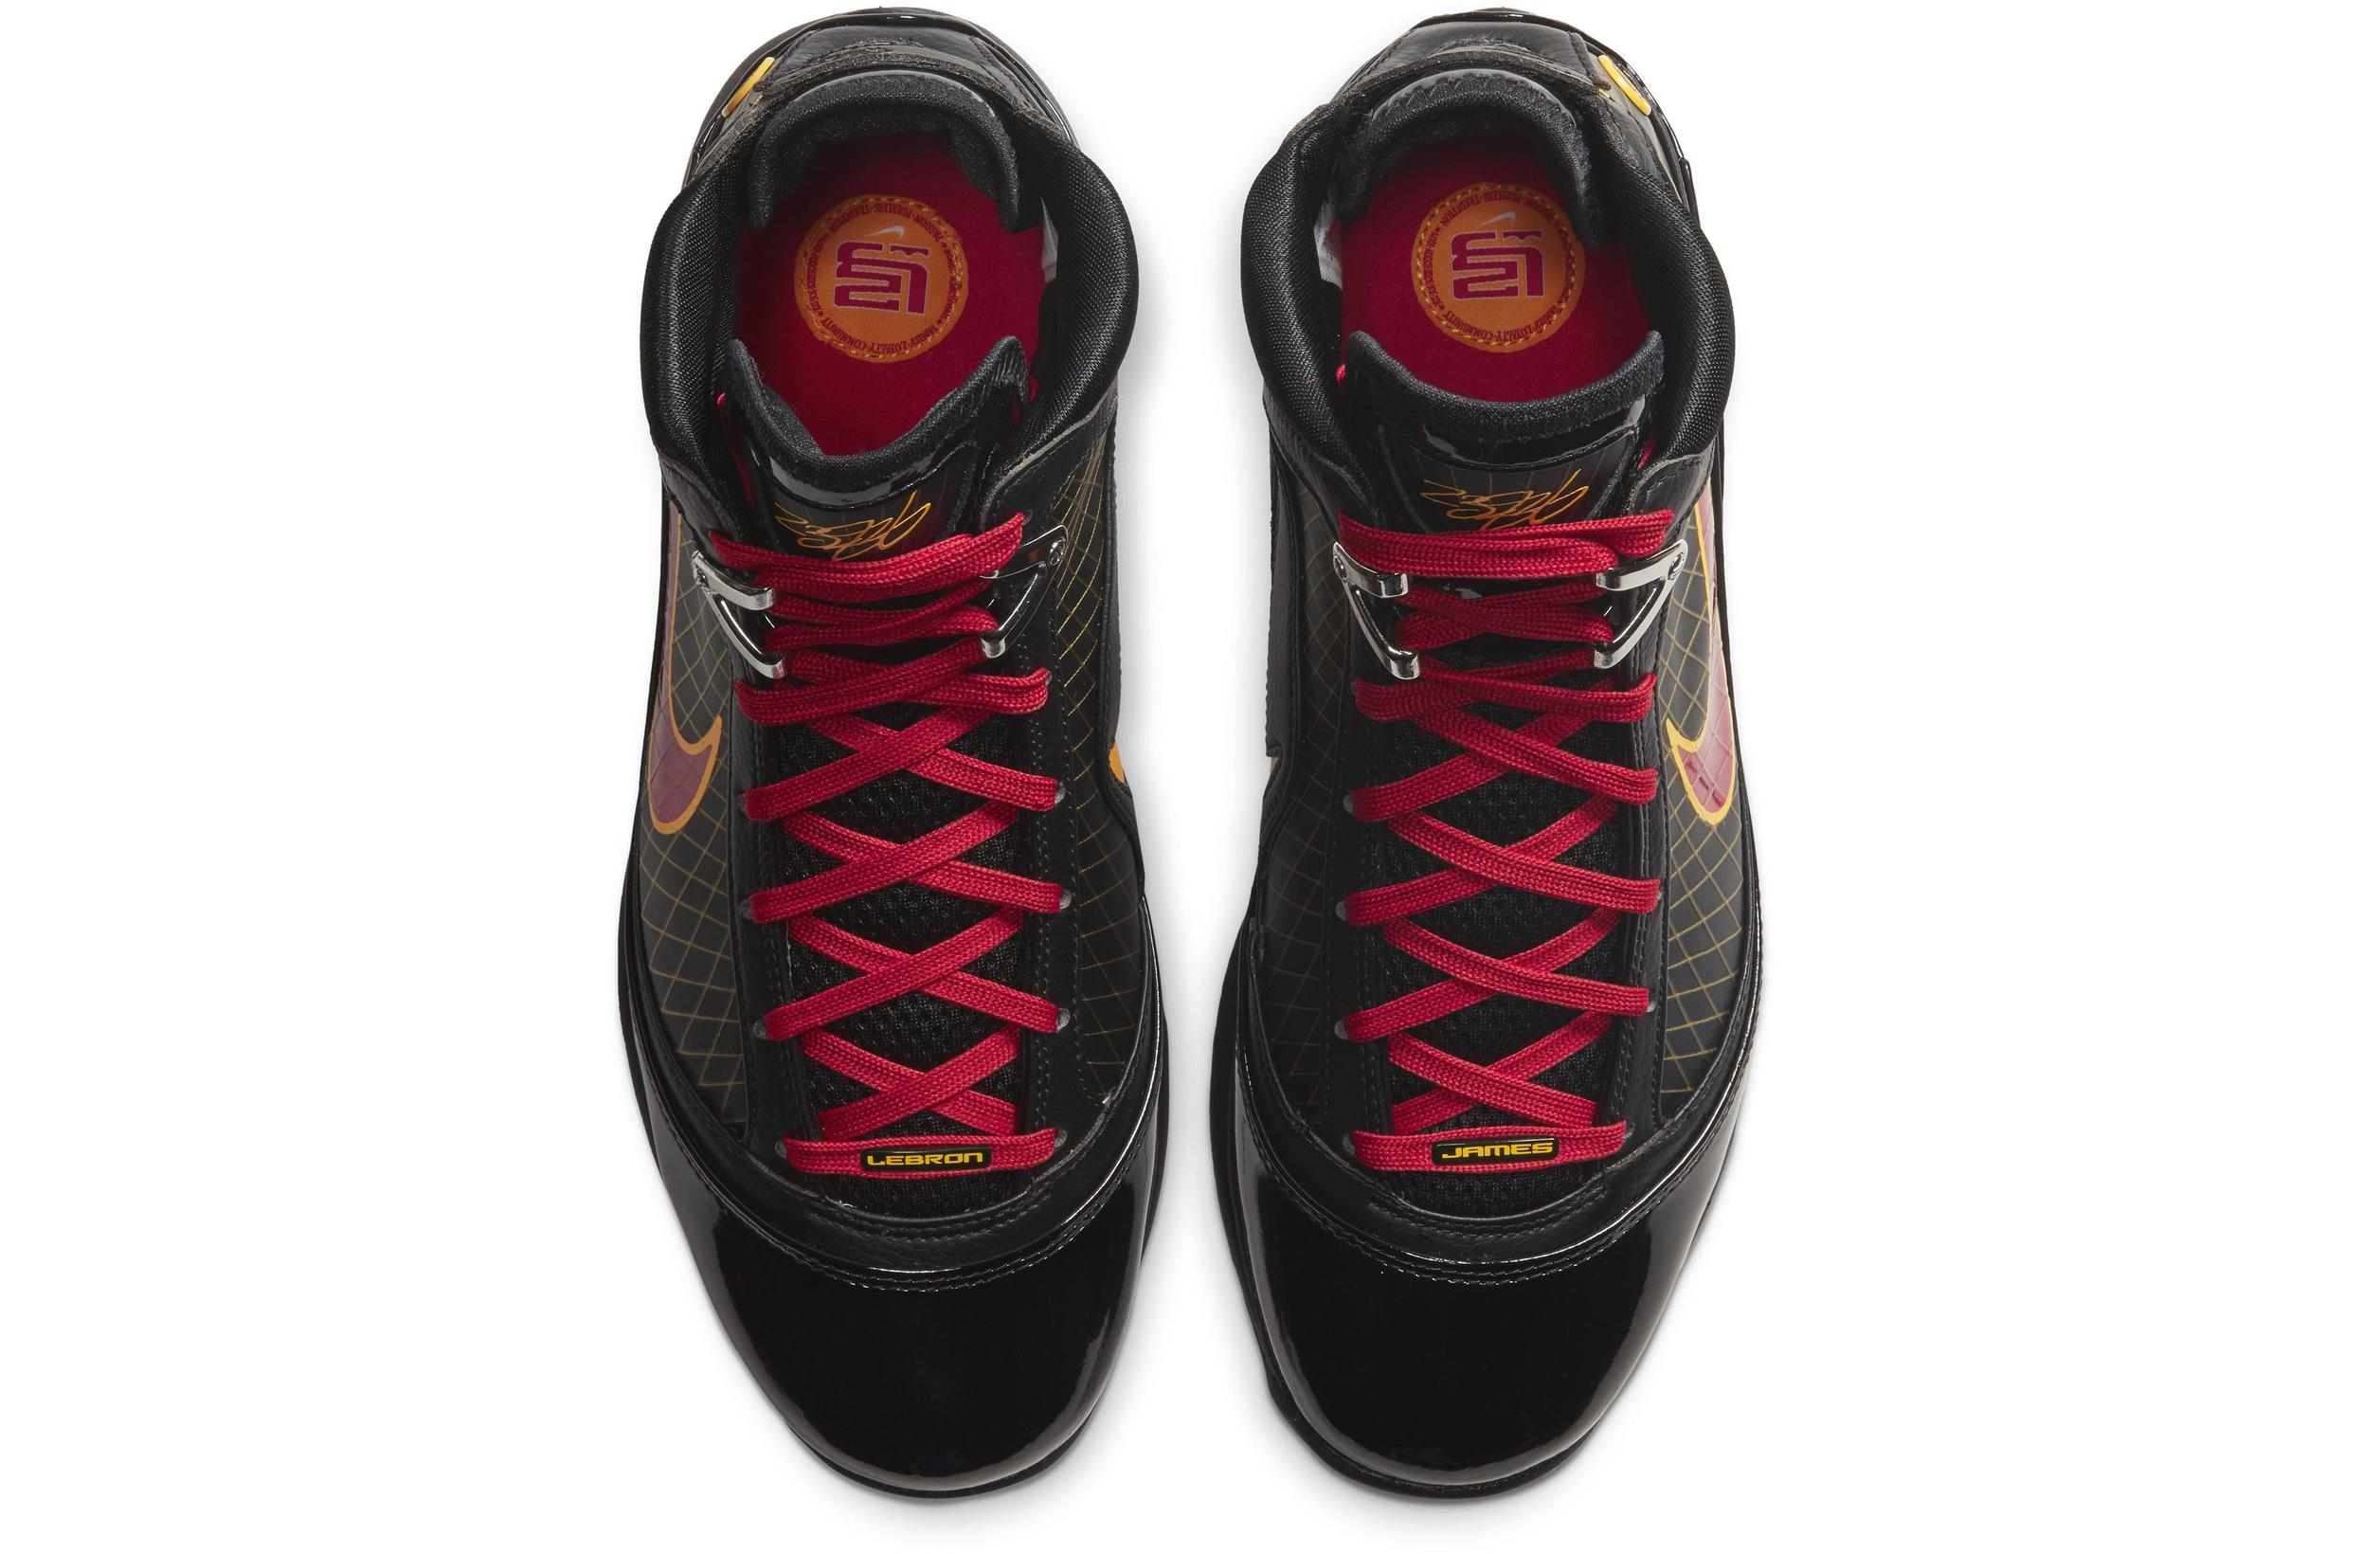 LeBron 7 QS Black/Varsity Maize/Varsity Red